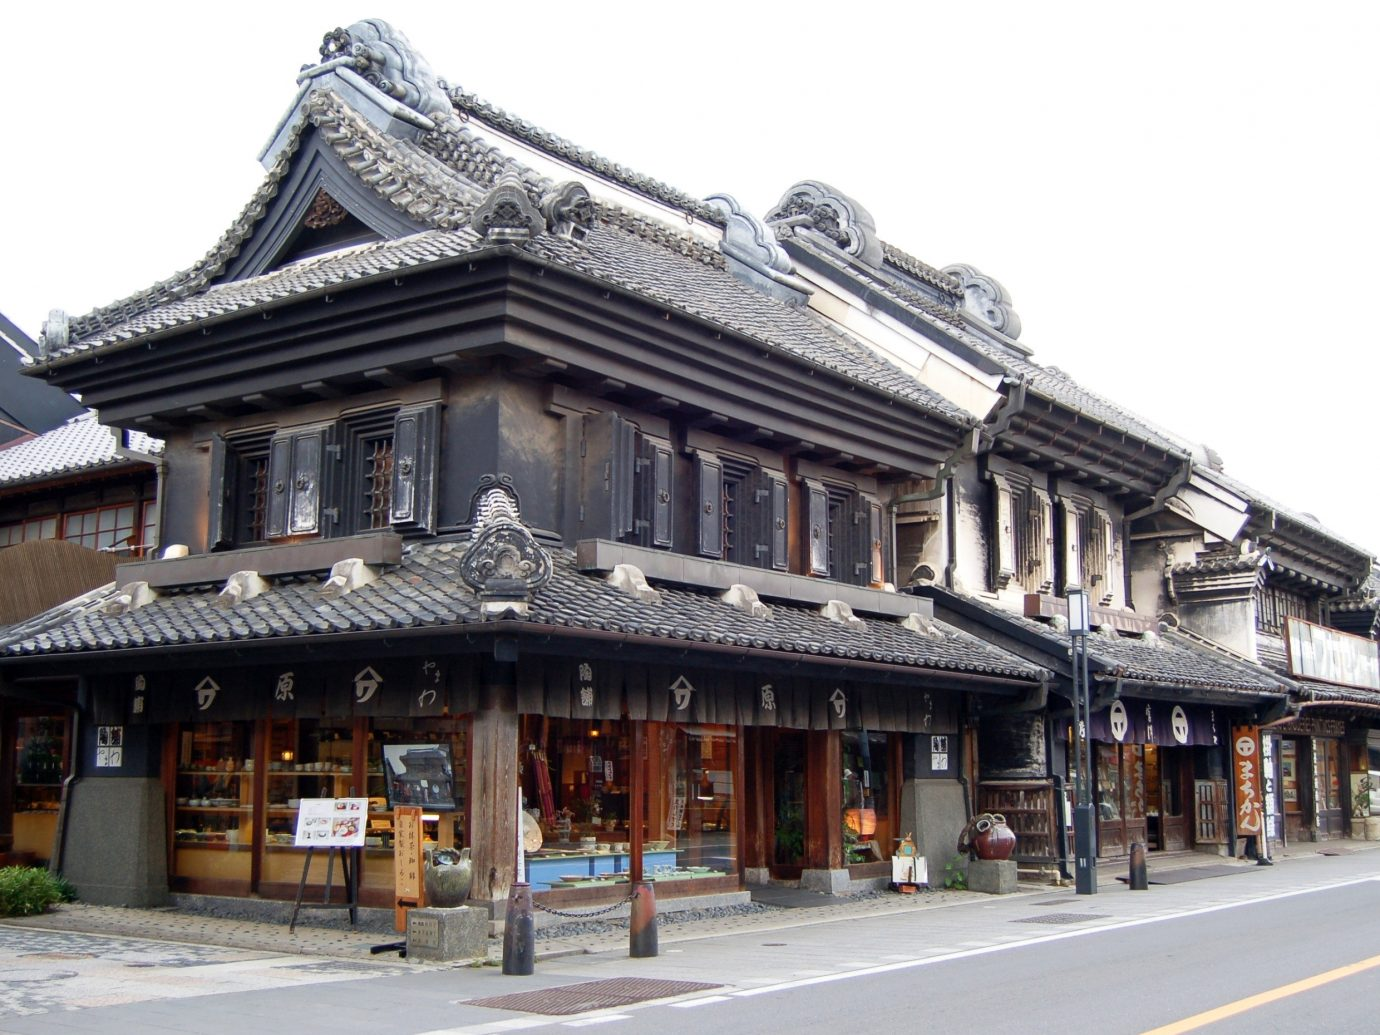 Day Trips building outdoor chinese architecture landmark Town japanese architecture neighbourhood facade house street Downtown temple shinto shrine old